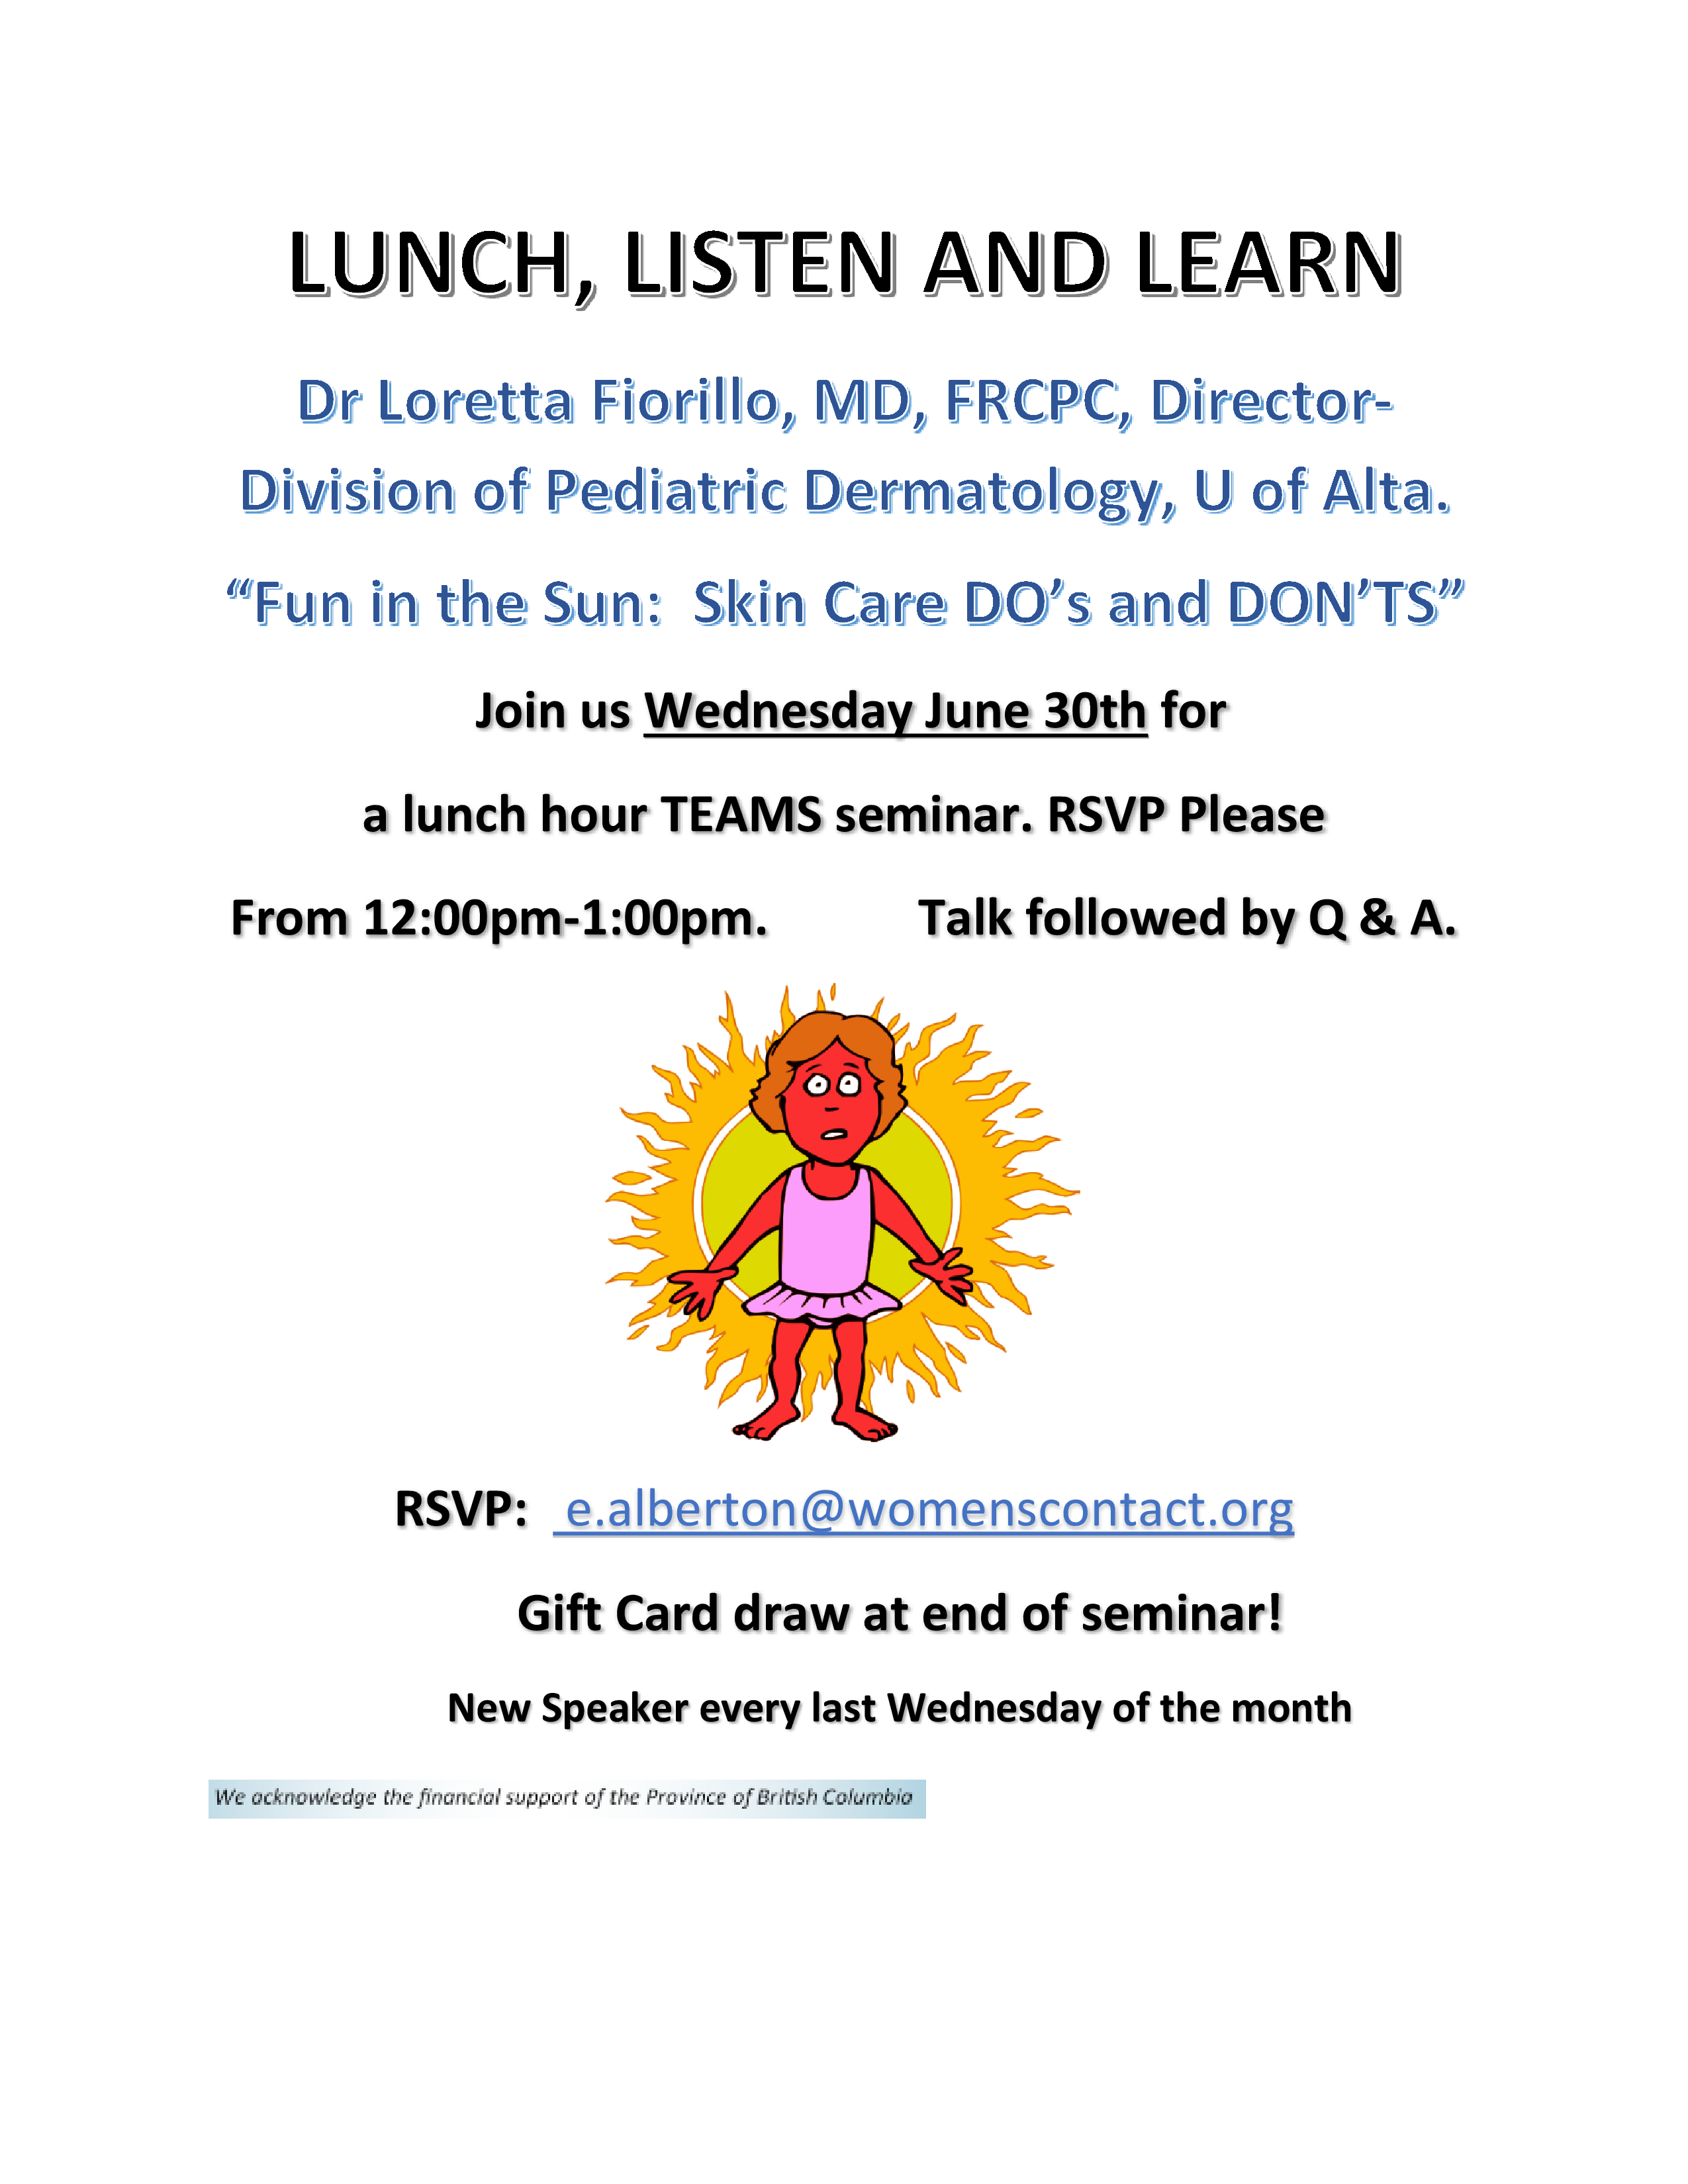 Lunch, Listen and Learn: Fun in the Sun, Skin Care Do's and Don'ts @ MS Teams